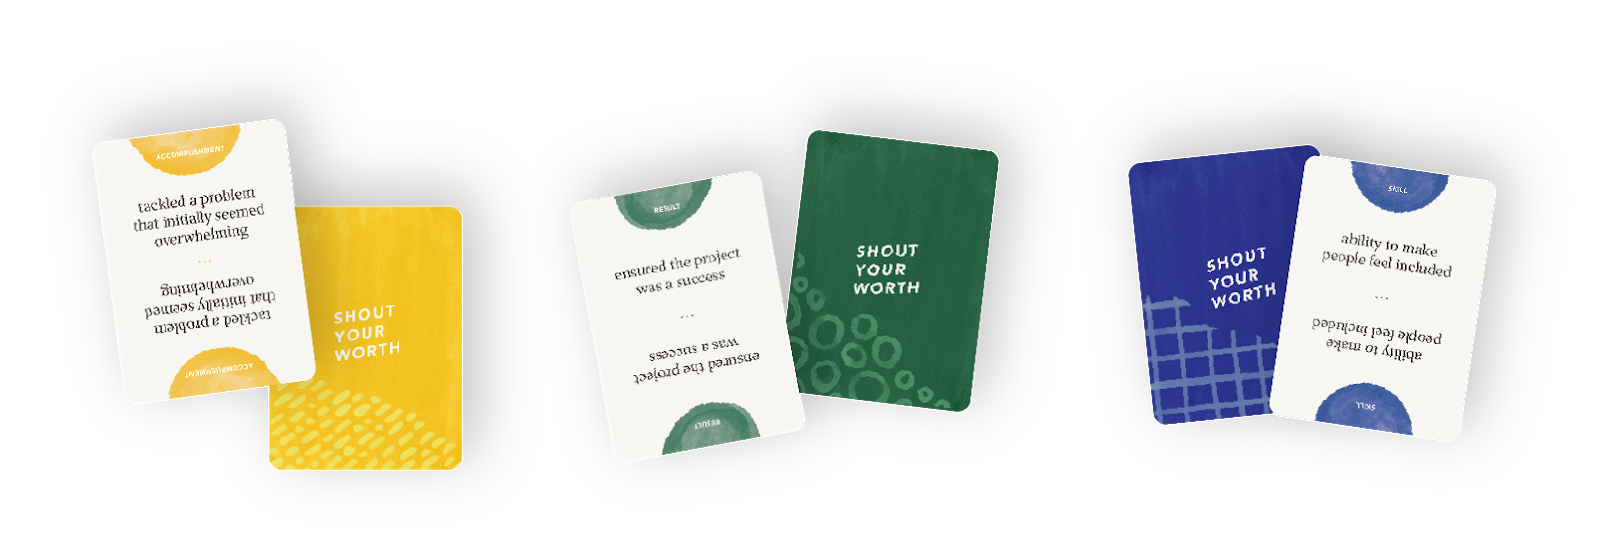 Examples of Accomplishment, Skill, Result cards.